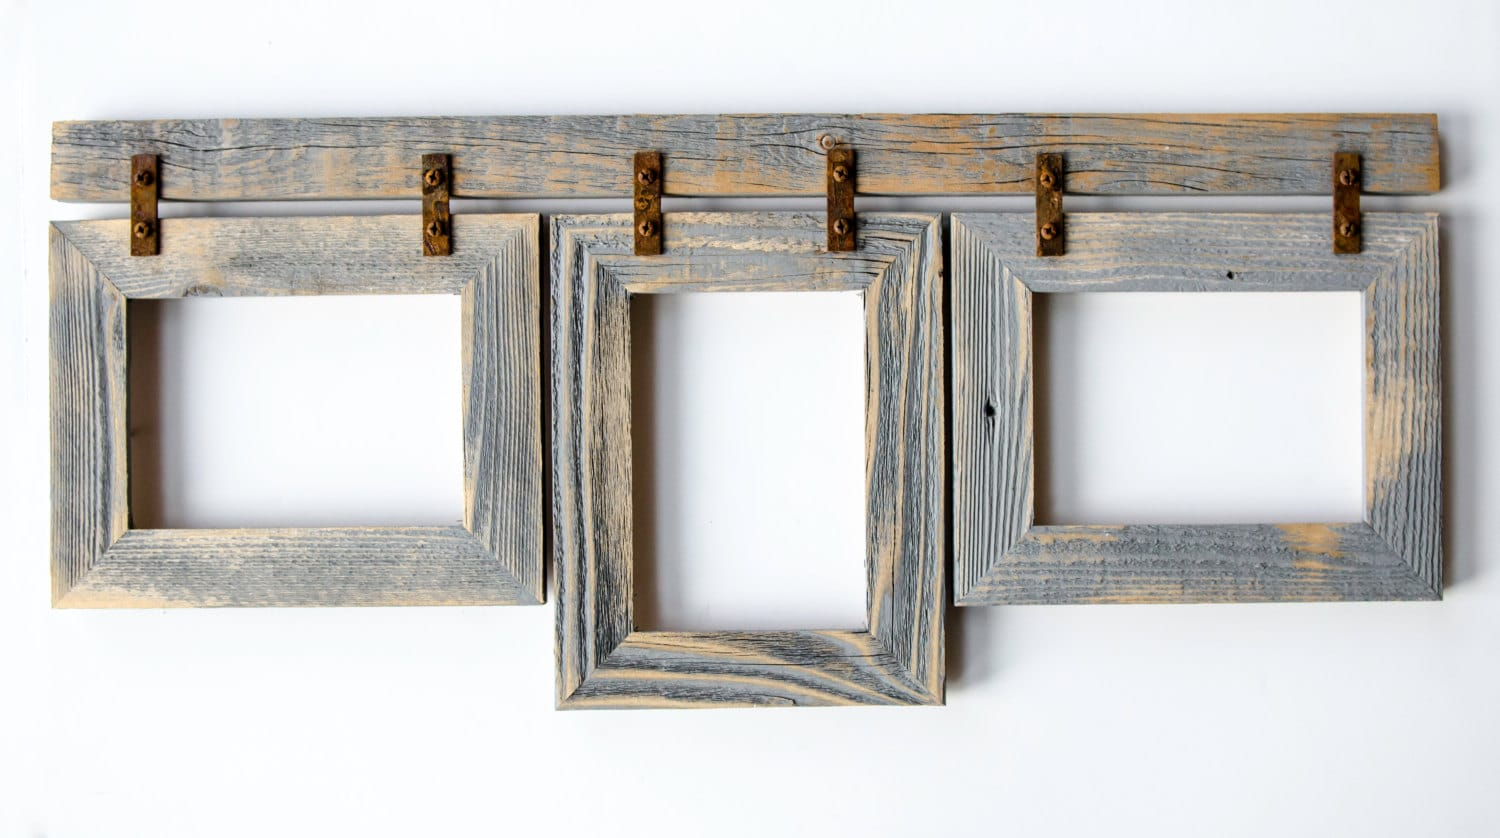 Barnwood Collage Frame 3 5x7 Multi Opening Frame. Rustic